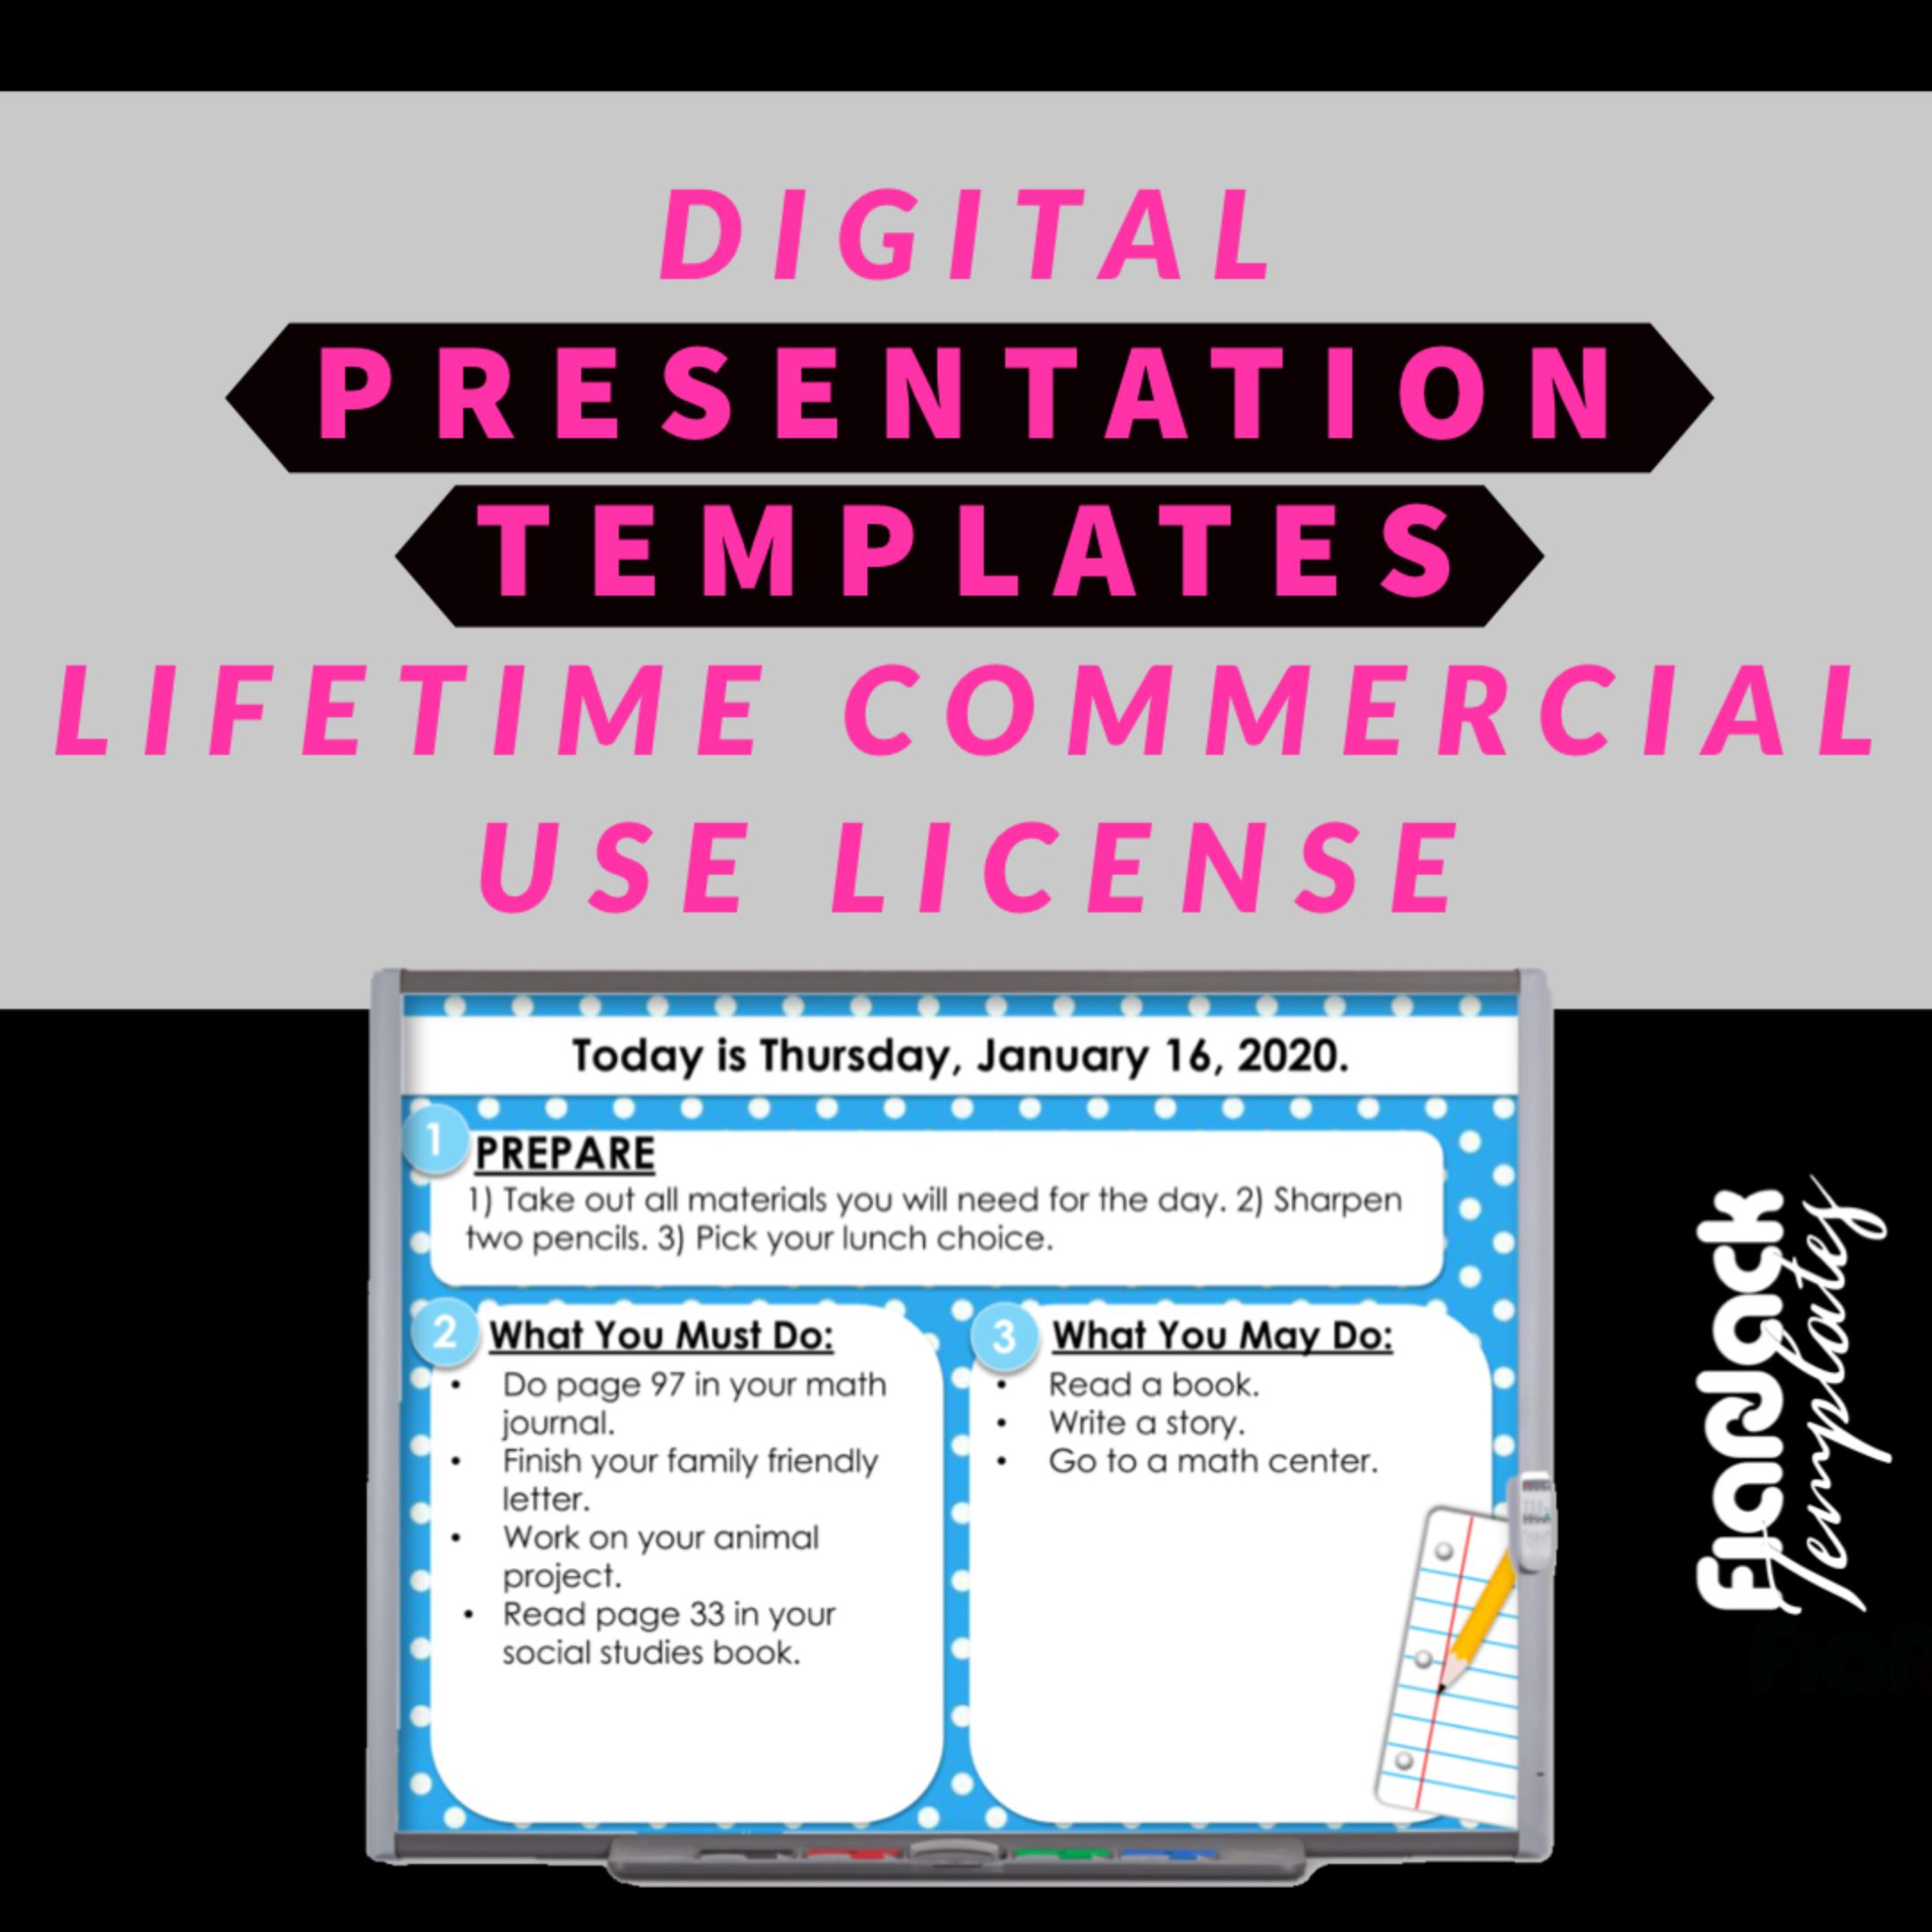 Digital PRESENTATION TEMPLATES Google Slides PPT Commercial License